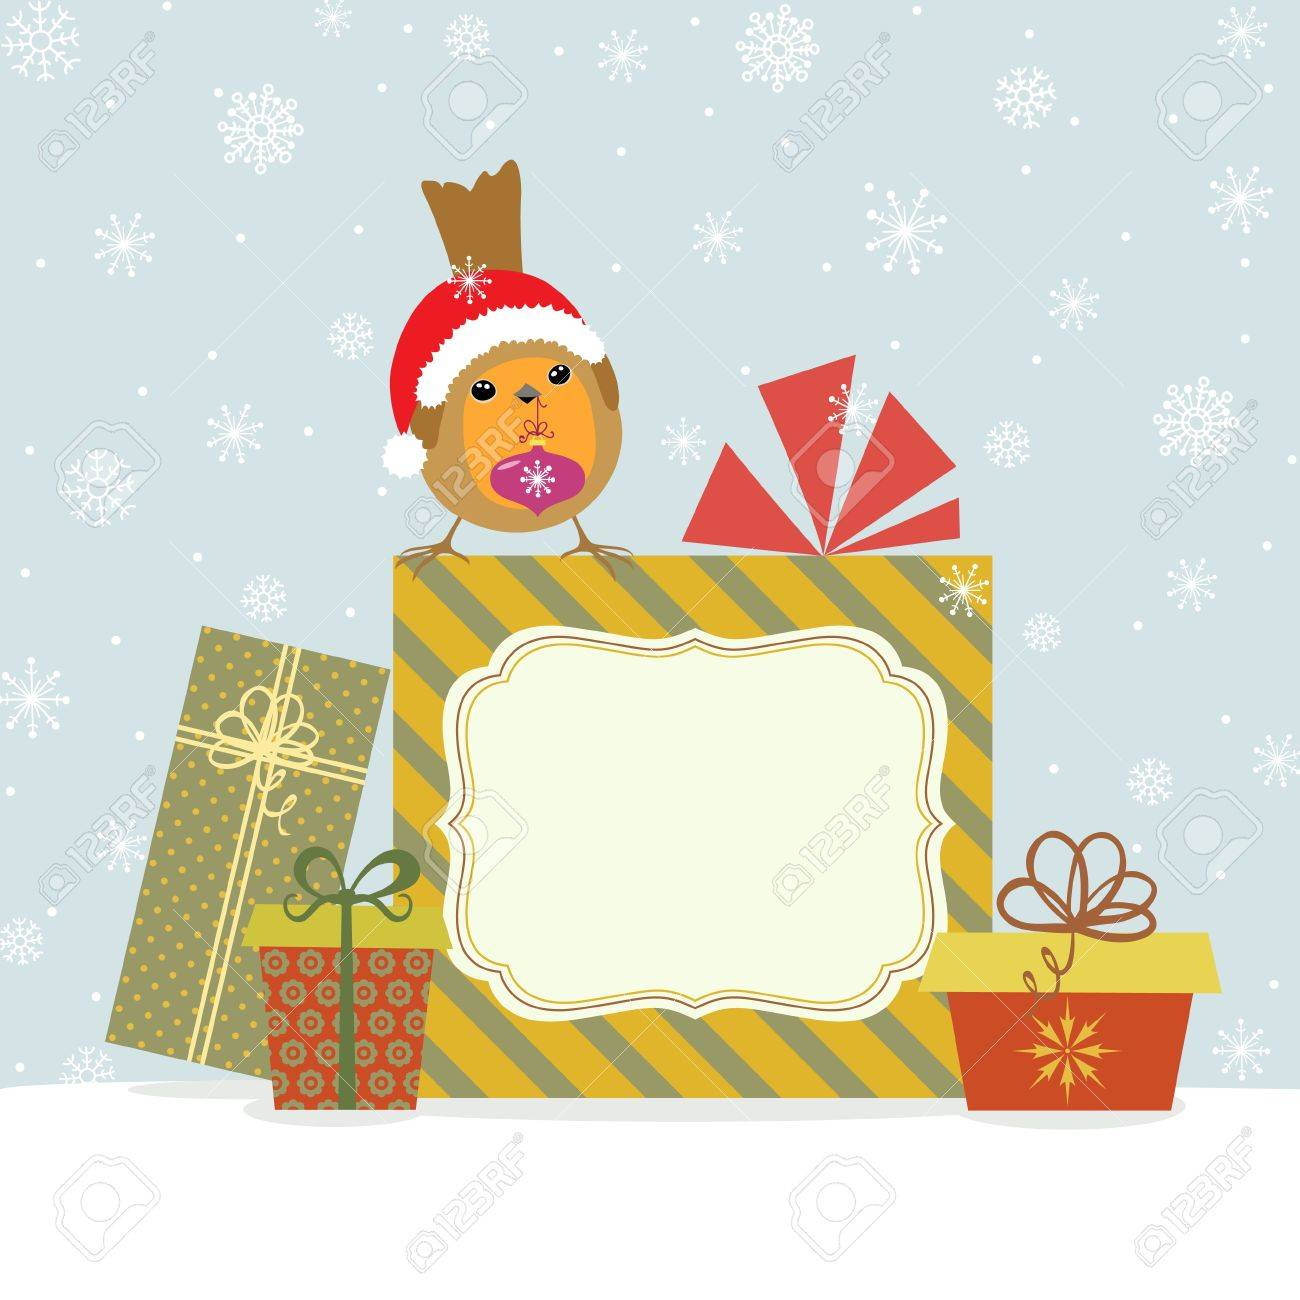 Christmas card with Robin, gifts and copy space. Stock Vector - 16460556